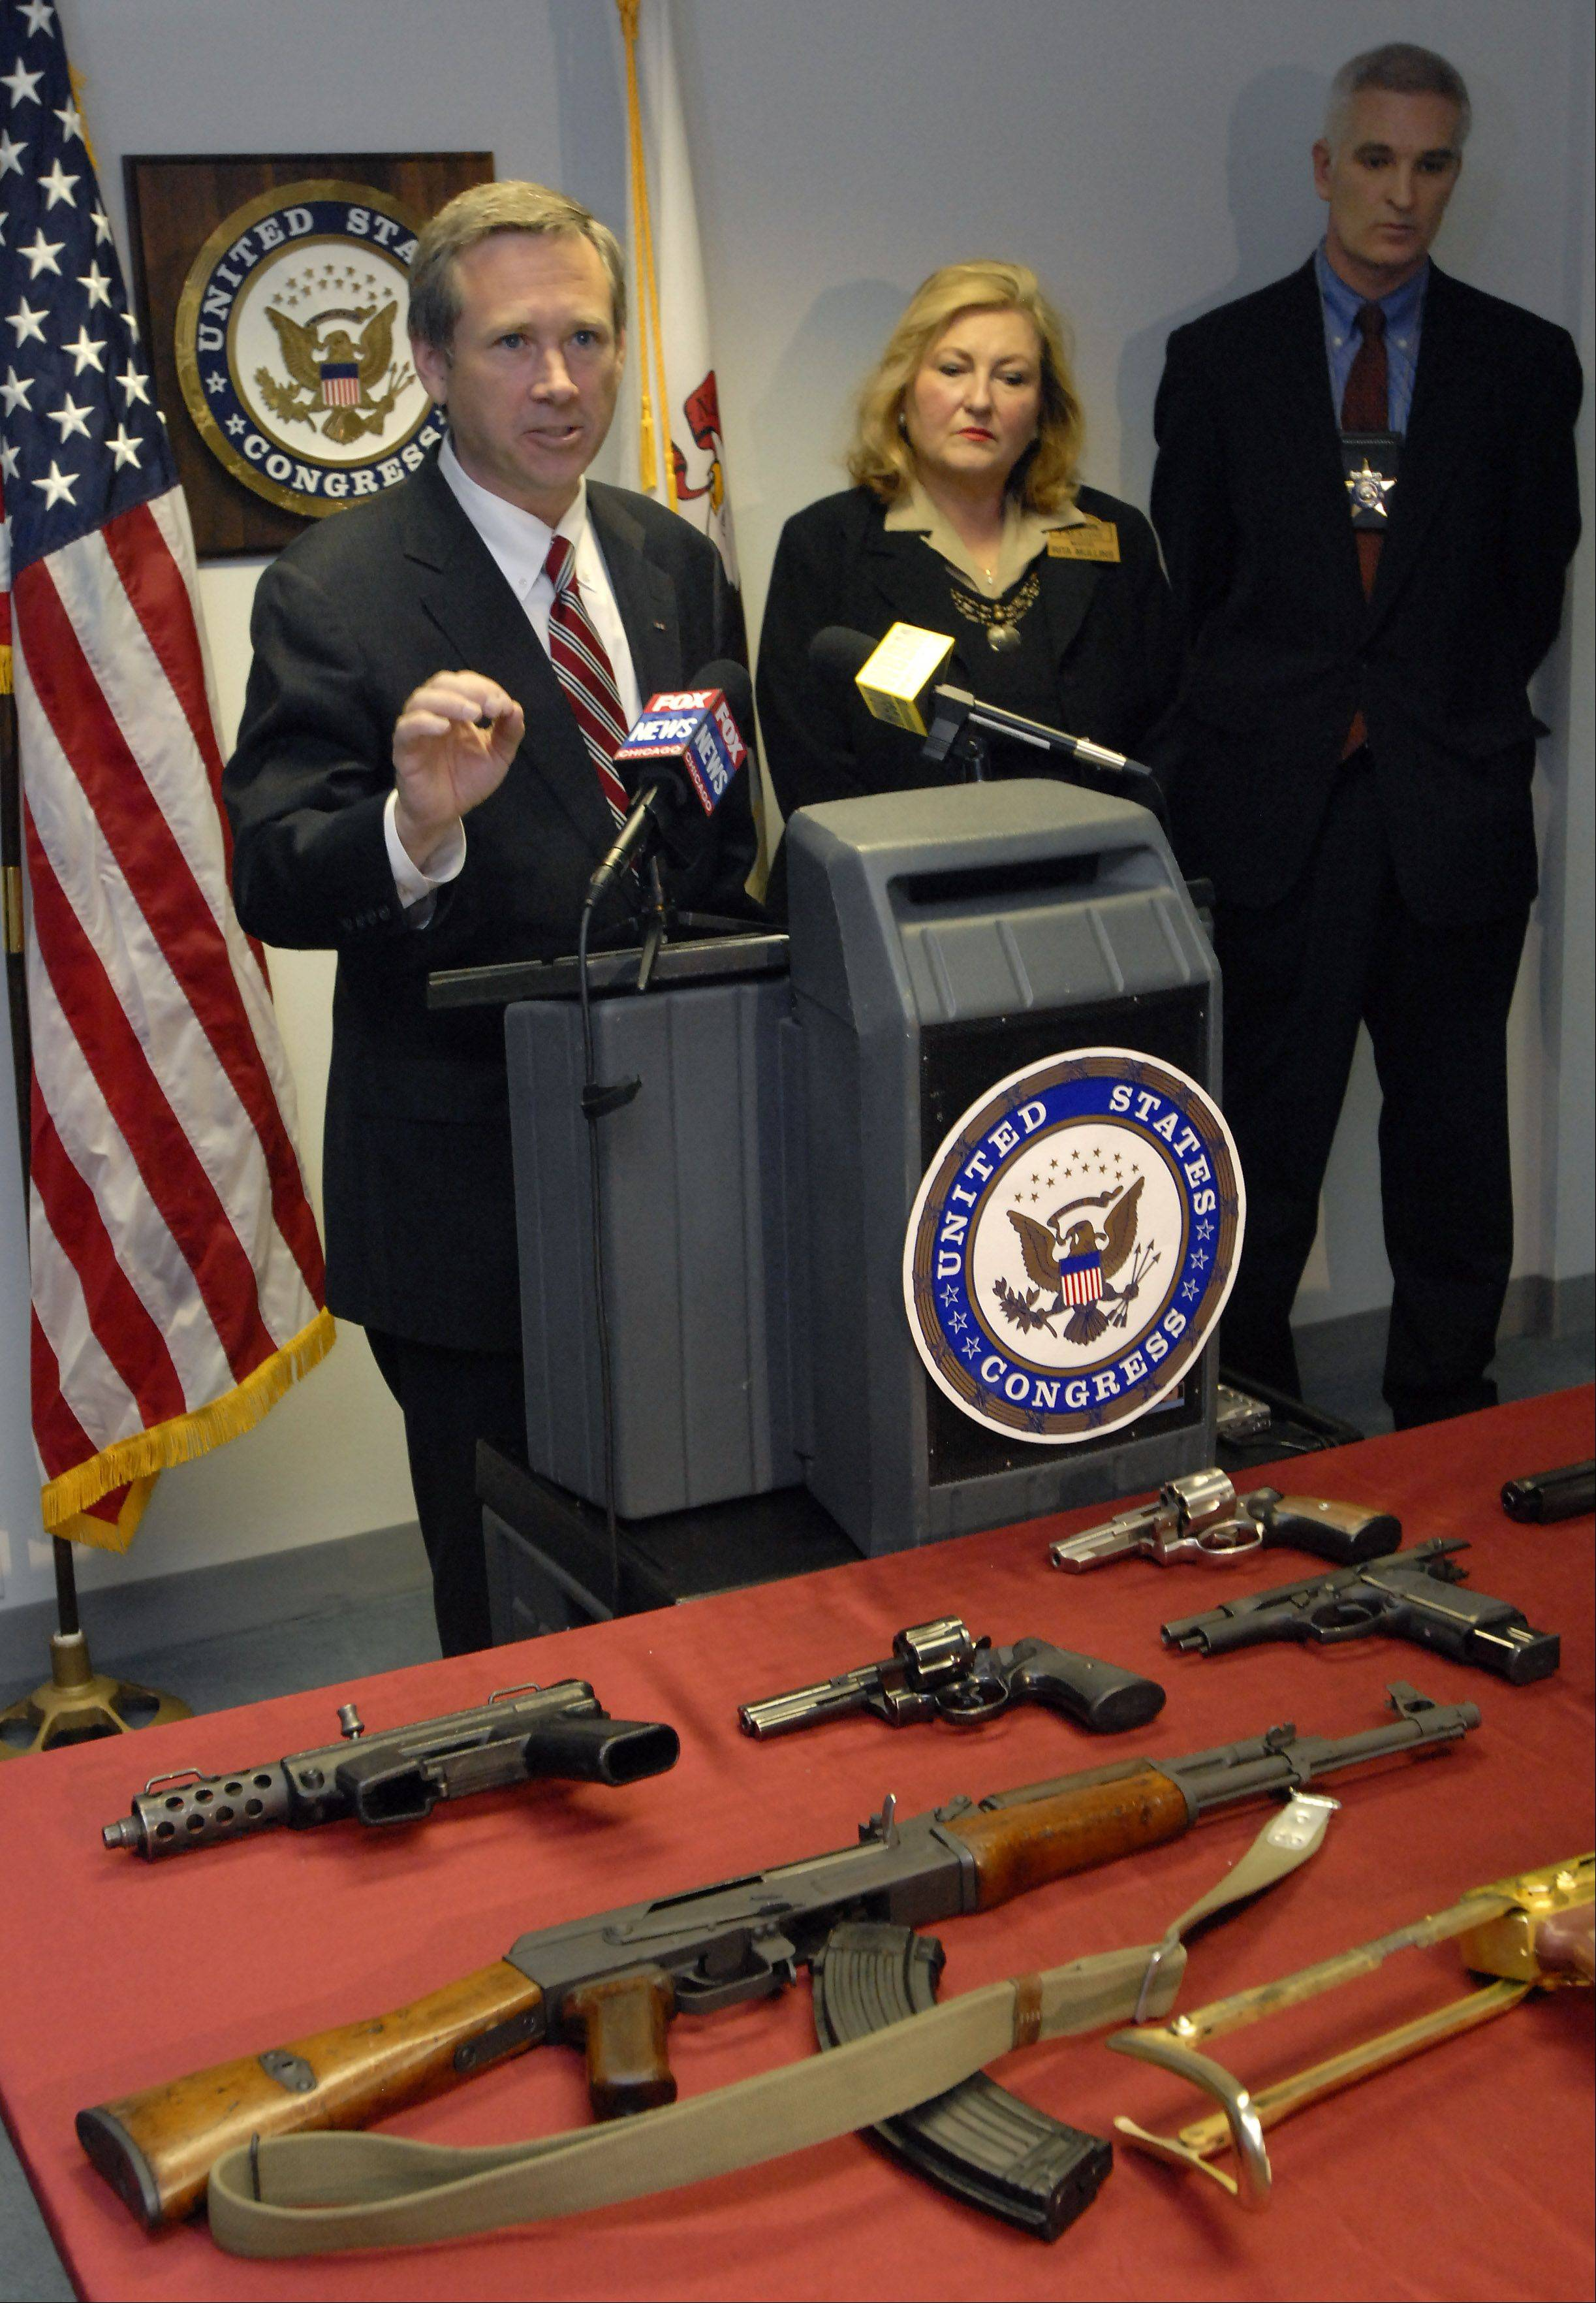 With a display of firearms seized in the northern suburbs U.S Rep. Mark Kirk calls for federal action to combat the rise of illegal gun trafficking in the Chicago area at a press conference that included Palatine Mayor Rita Mullins and Lake County Sheriff Mark Curran.